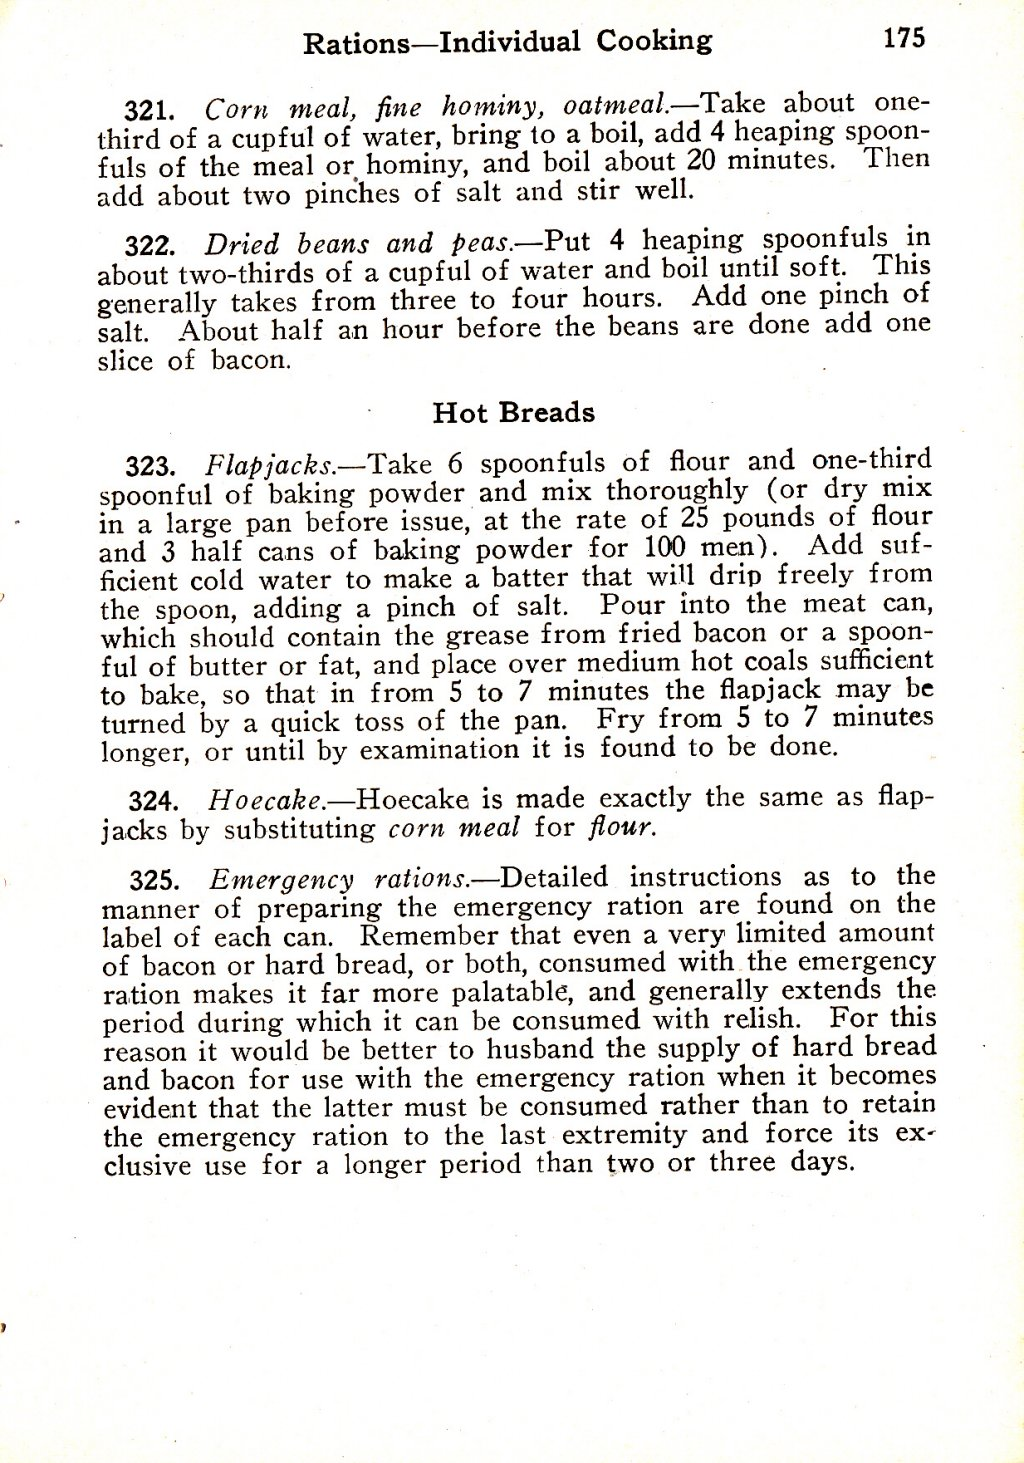 314th Infantry Regiment - Infantry Soldiers Handbook - Waldron - Page 175